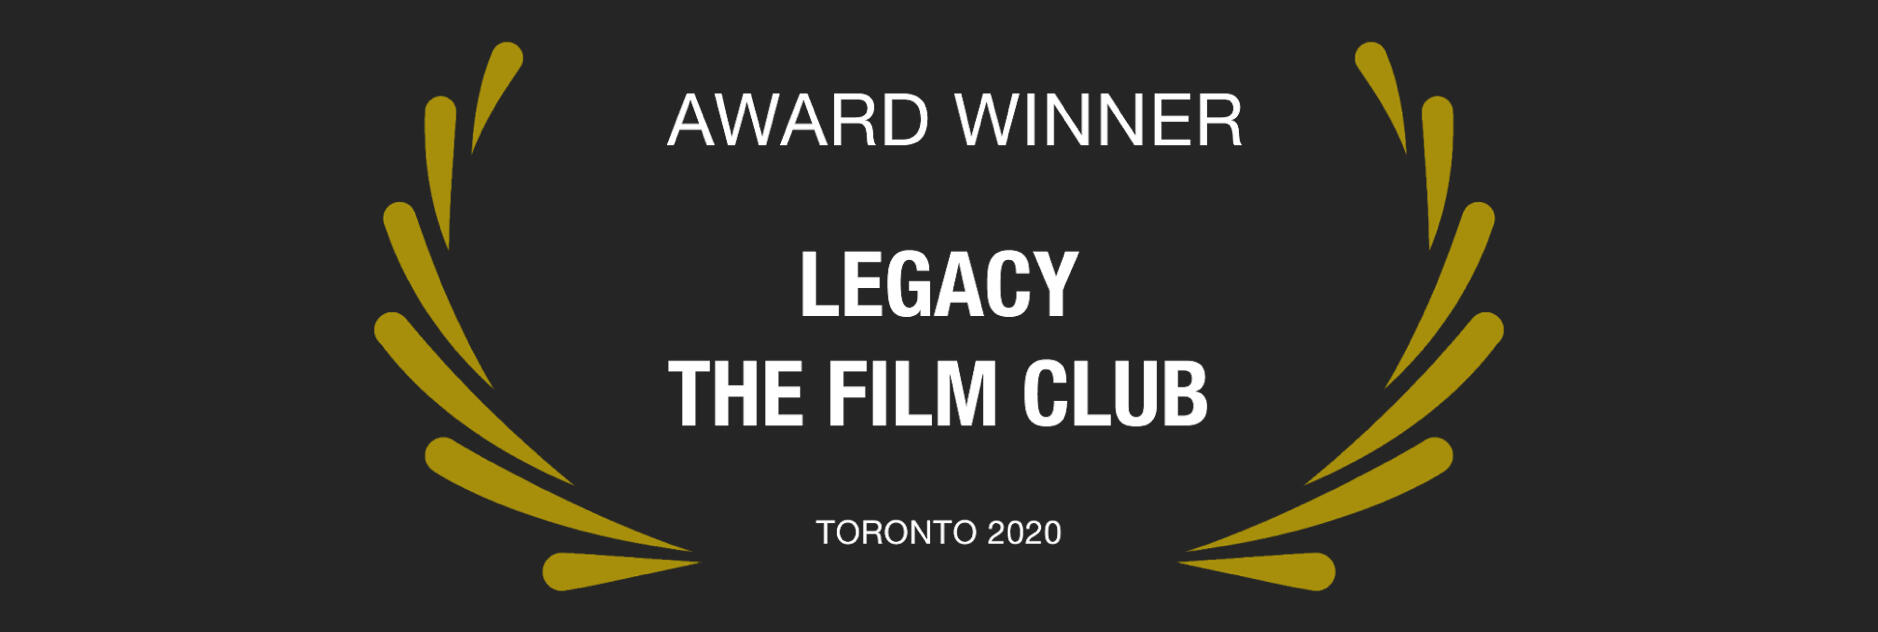 The Film Club - Toronto